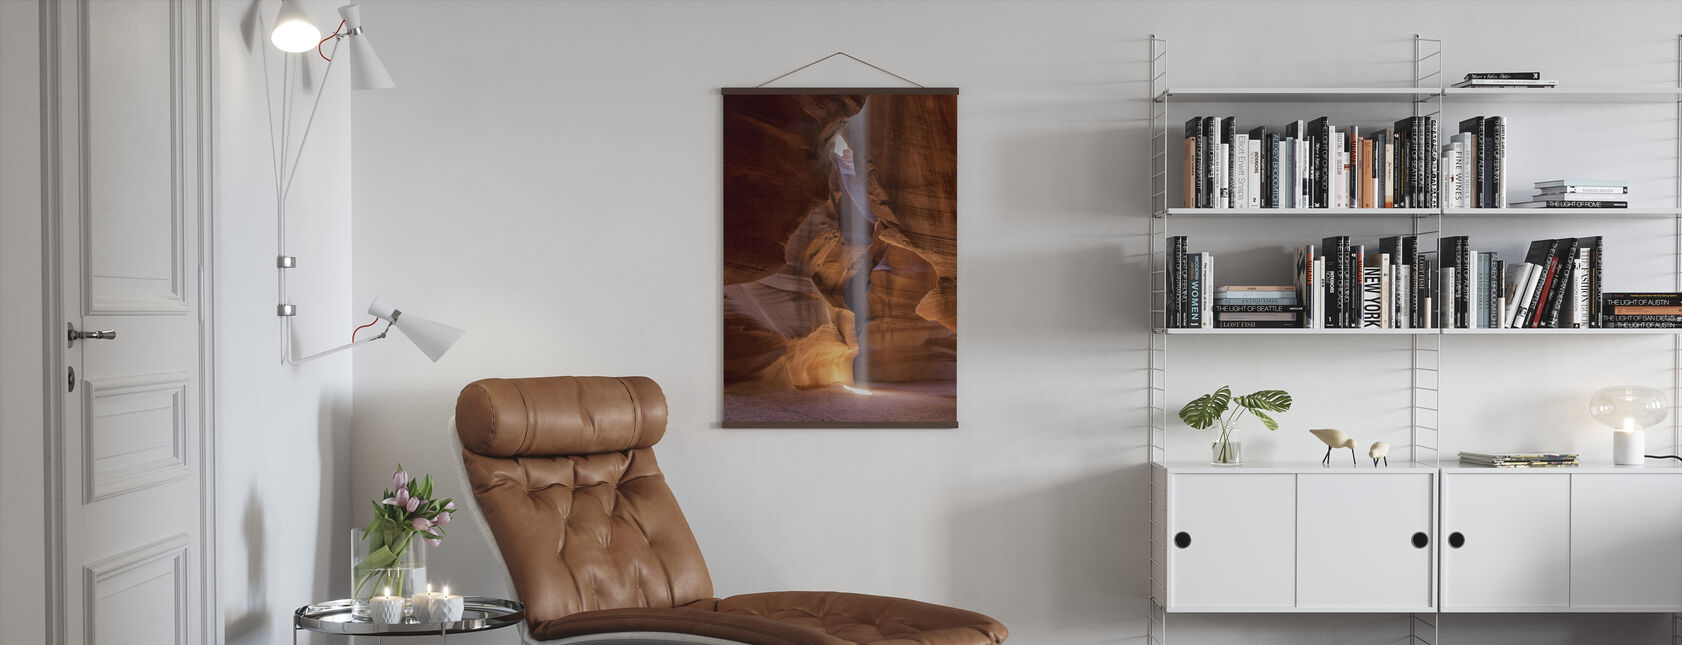 The Light Beam - Poster - Living Room